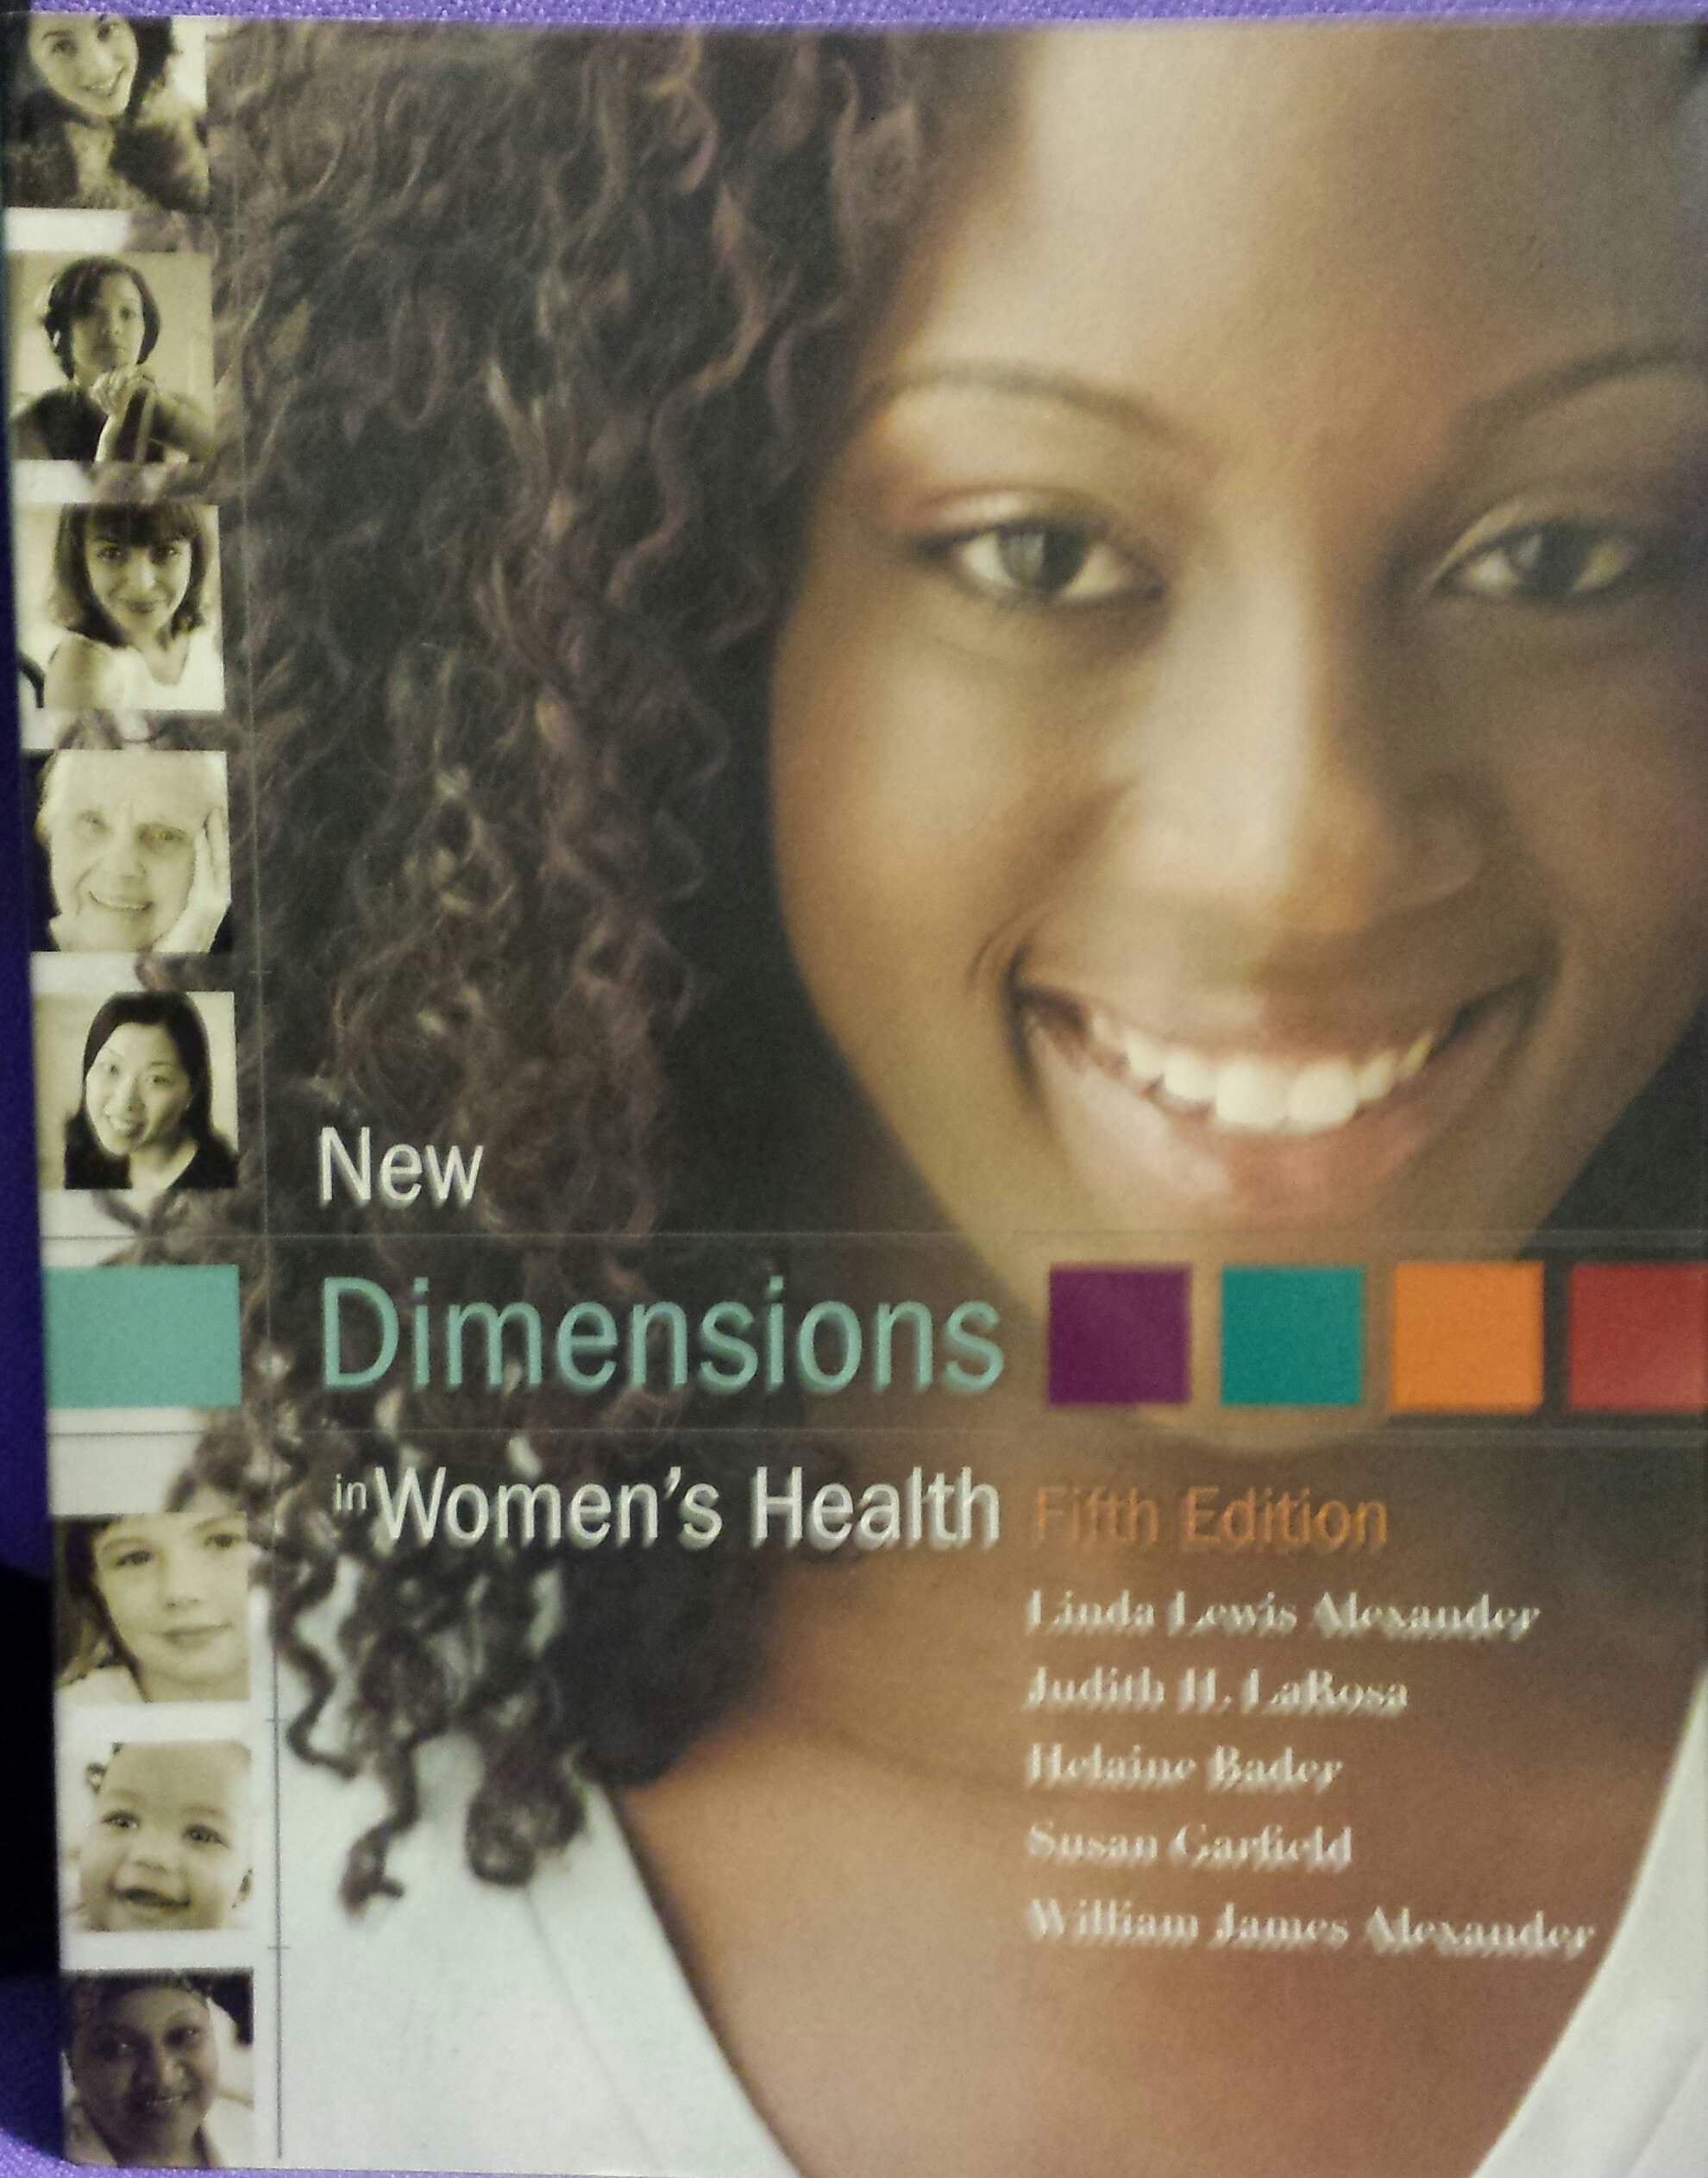 """Read Online New Dimensions In Womens Health"""" 5TH EDITION pdf"""